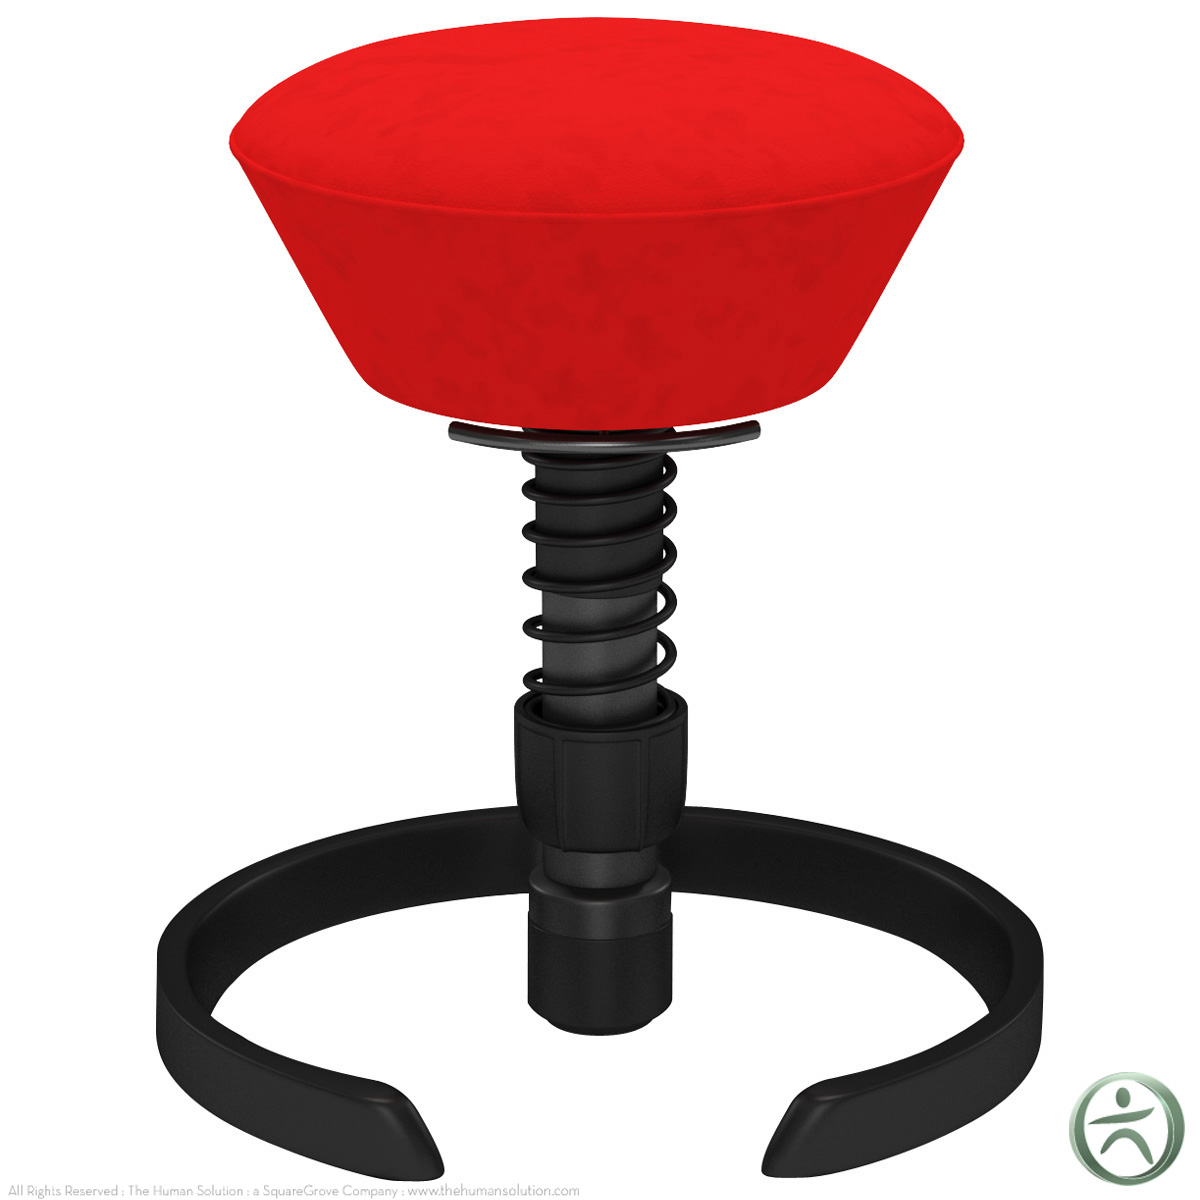 Swopper Chair Swopper Chair Design Your Own Shop Swopper Chairs